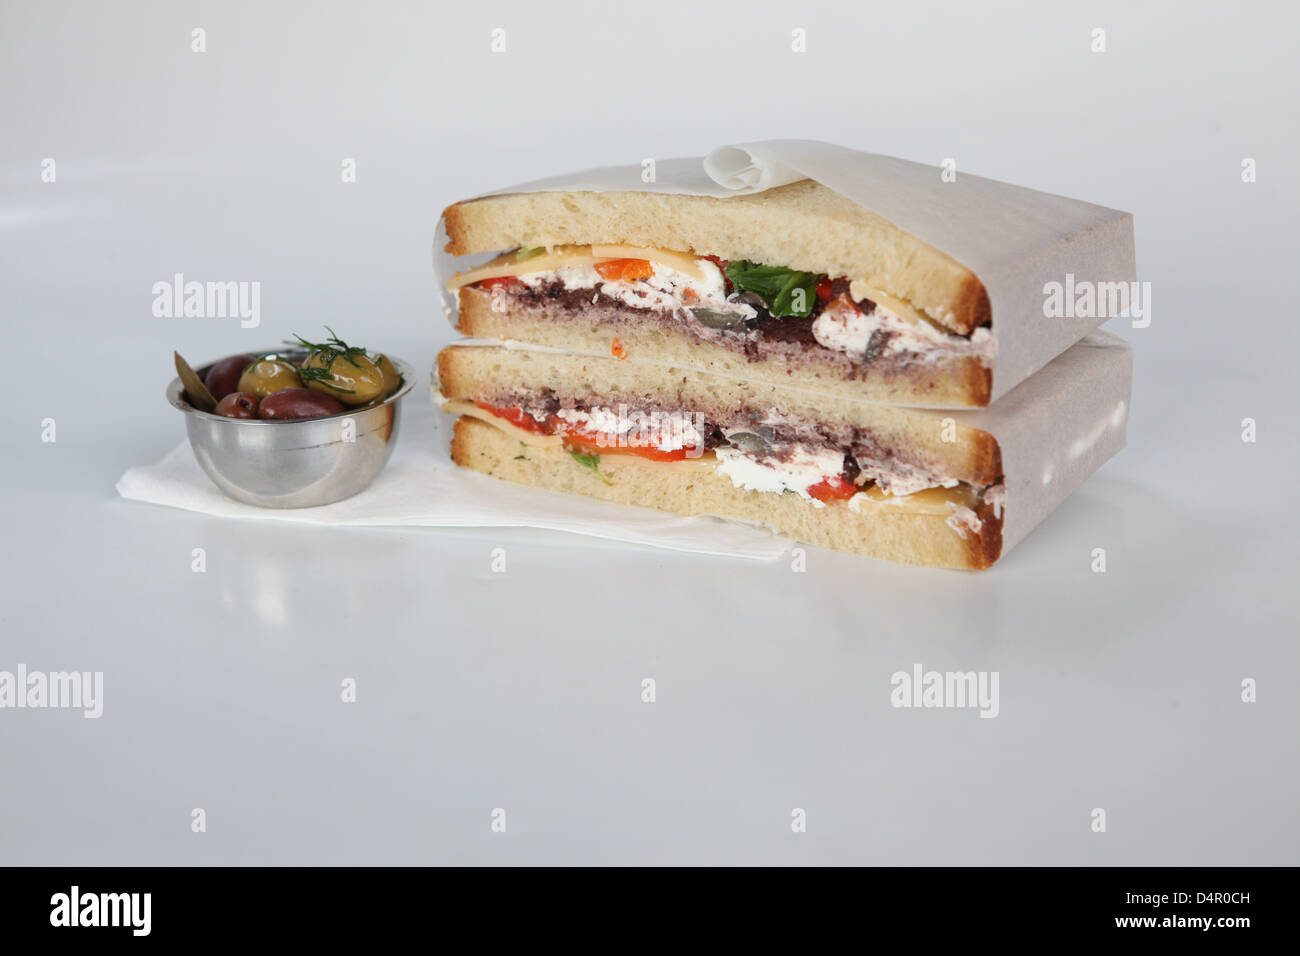 cheese sandwich with tomato and olive side dish - Stock Image